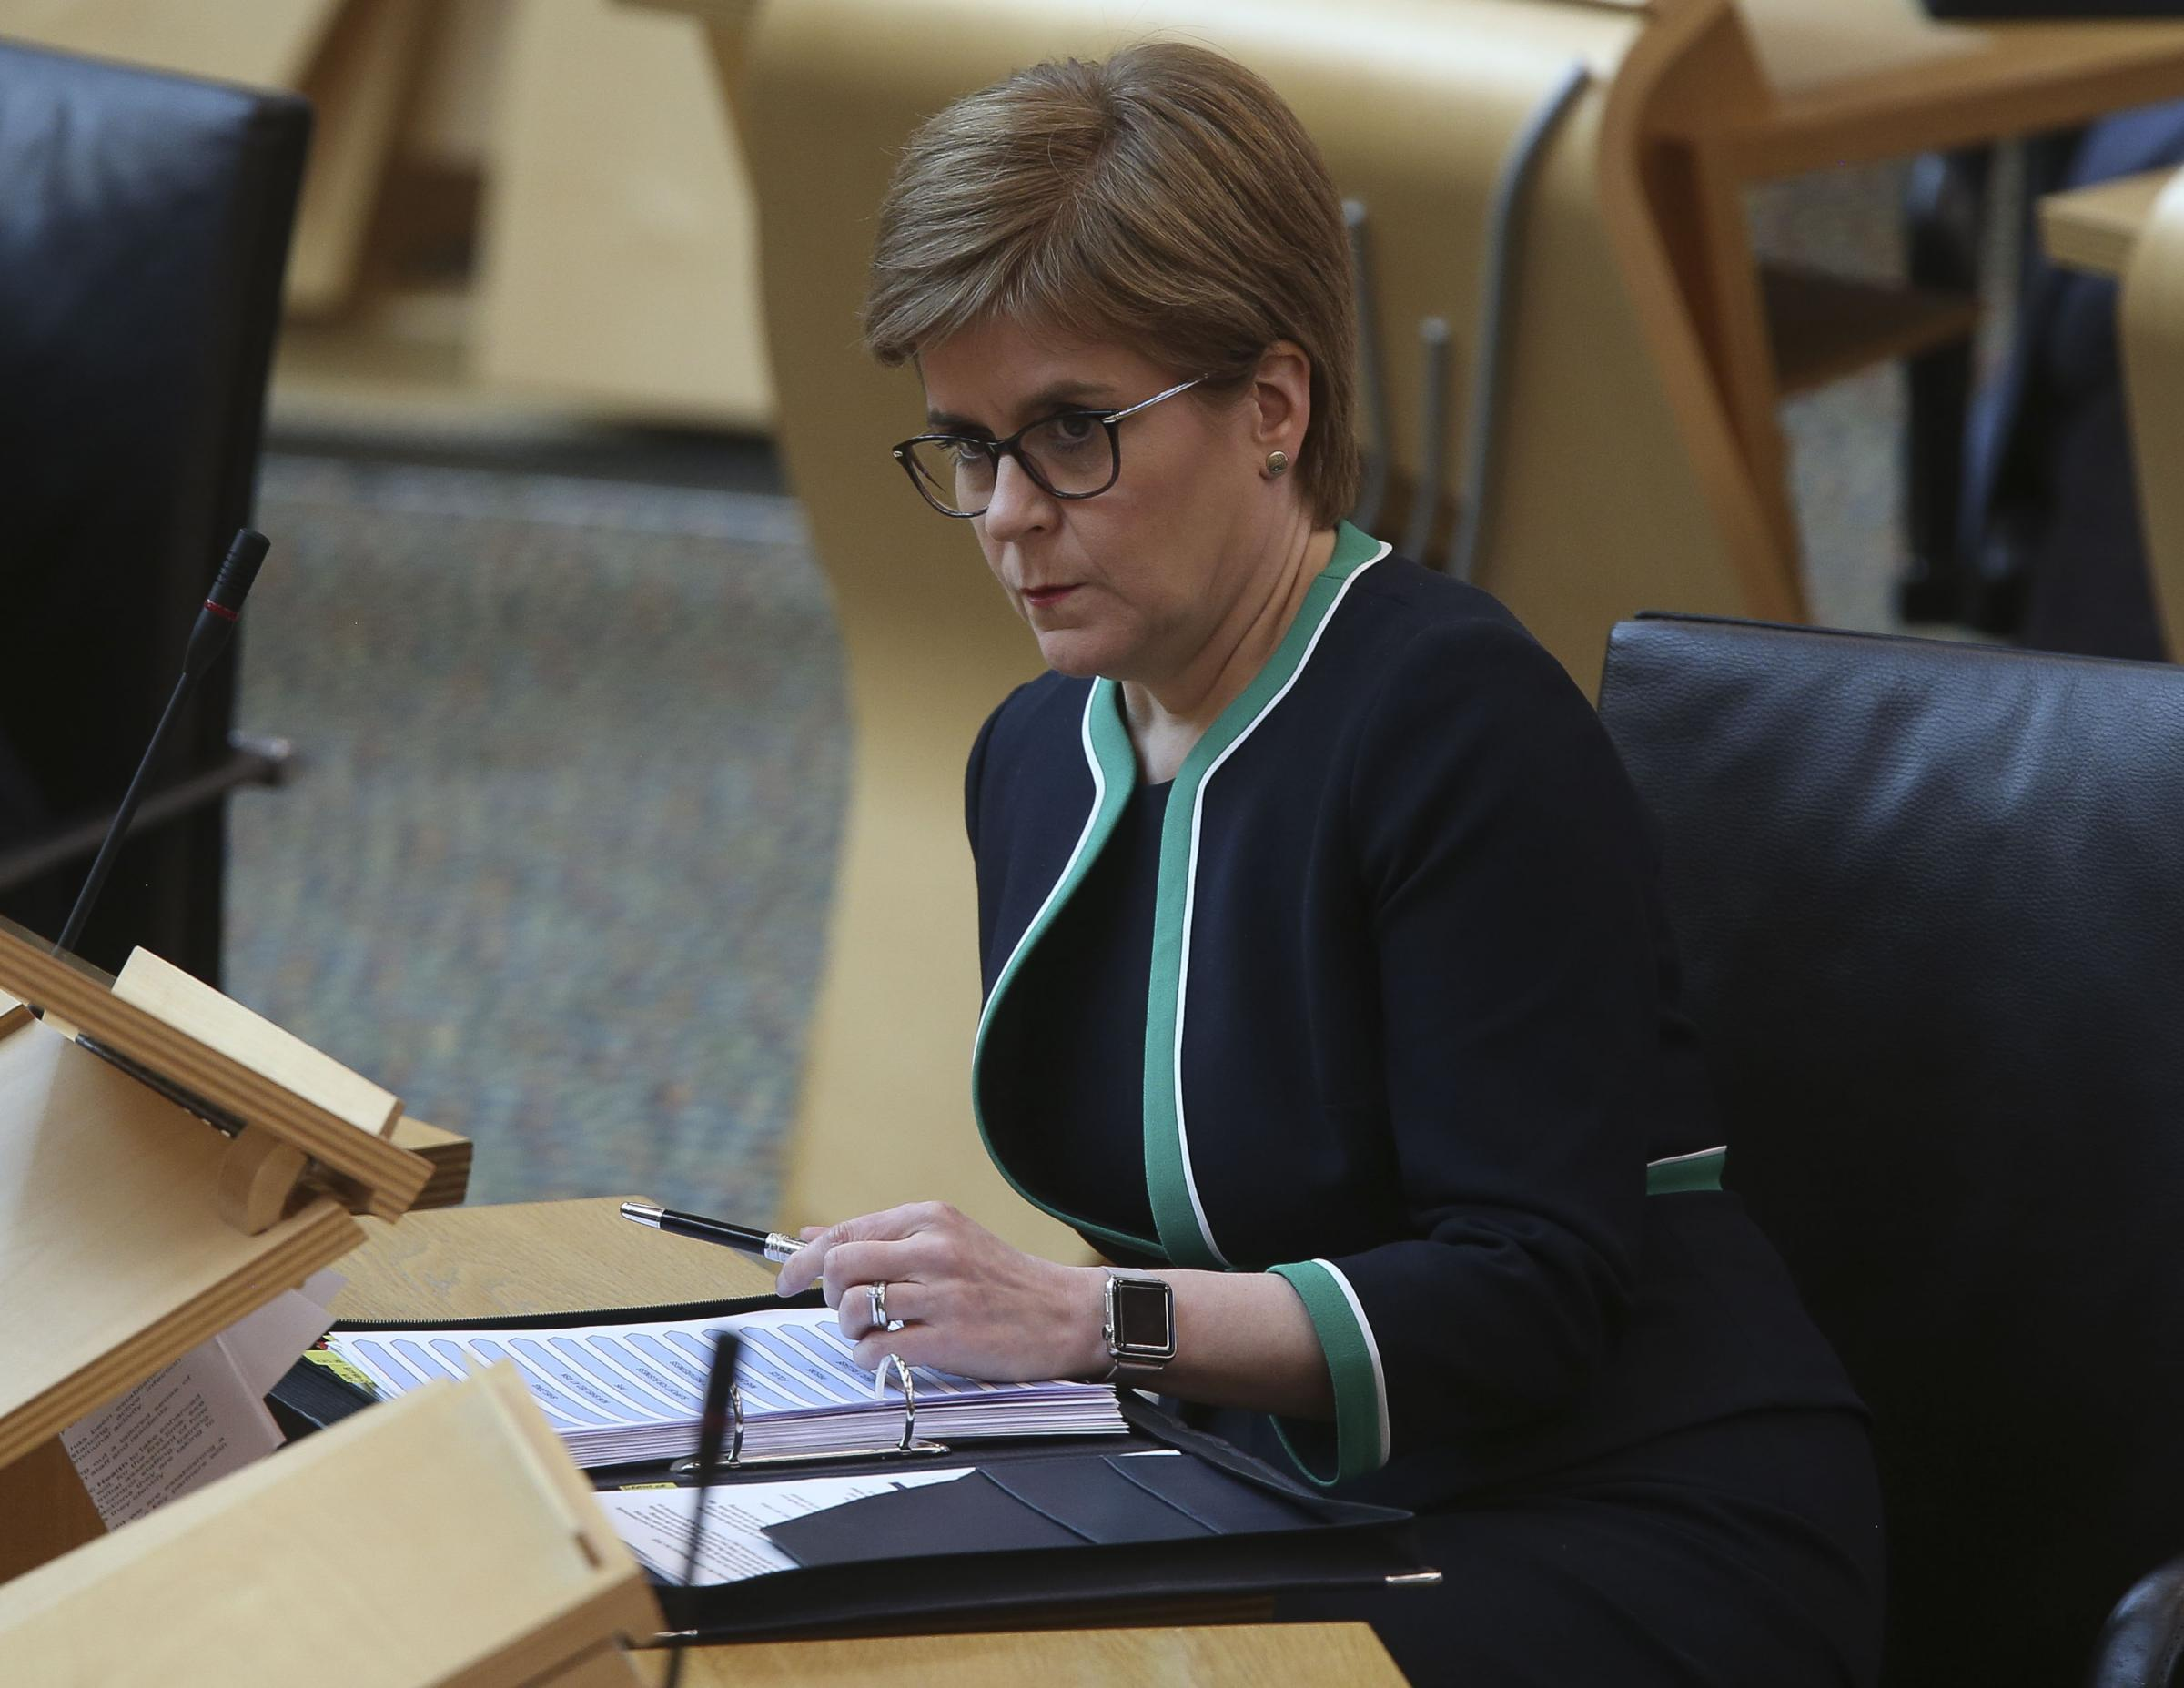 The SNP strategy of not rocking the boat is risky